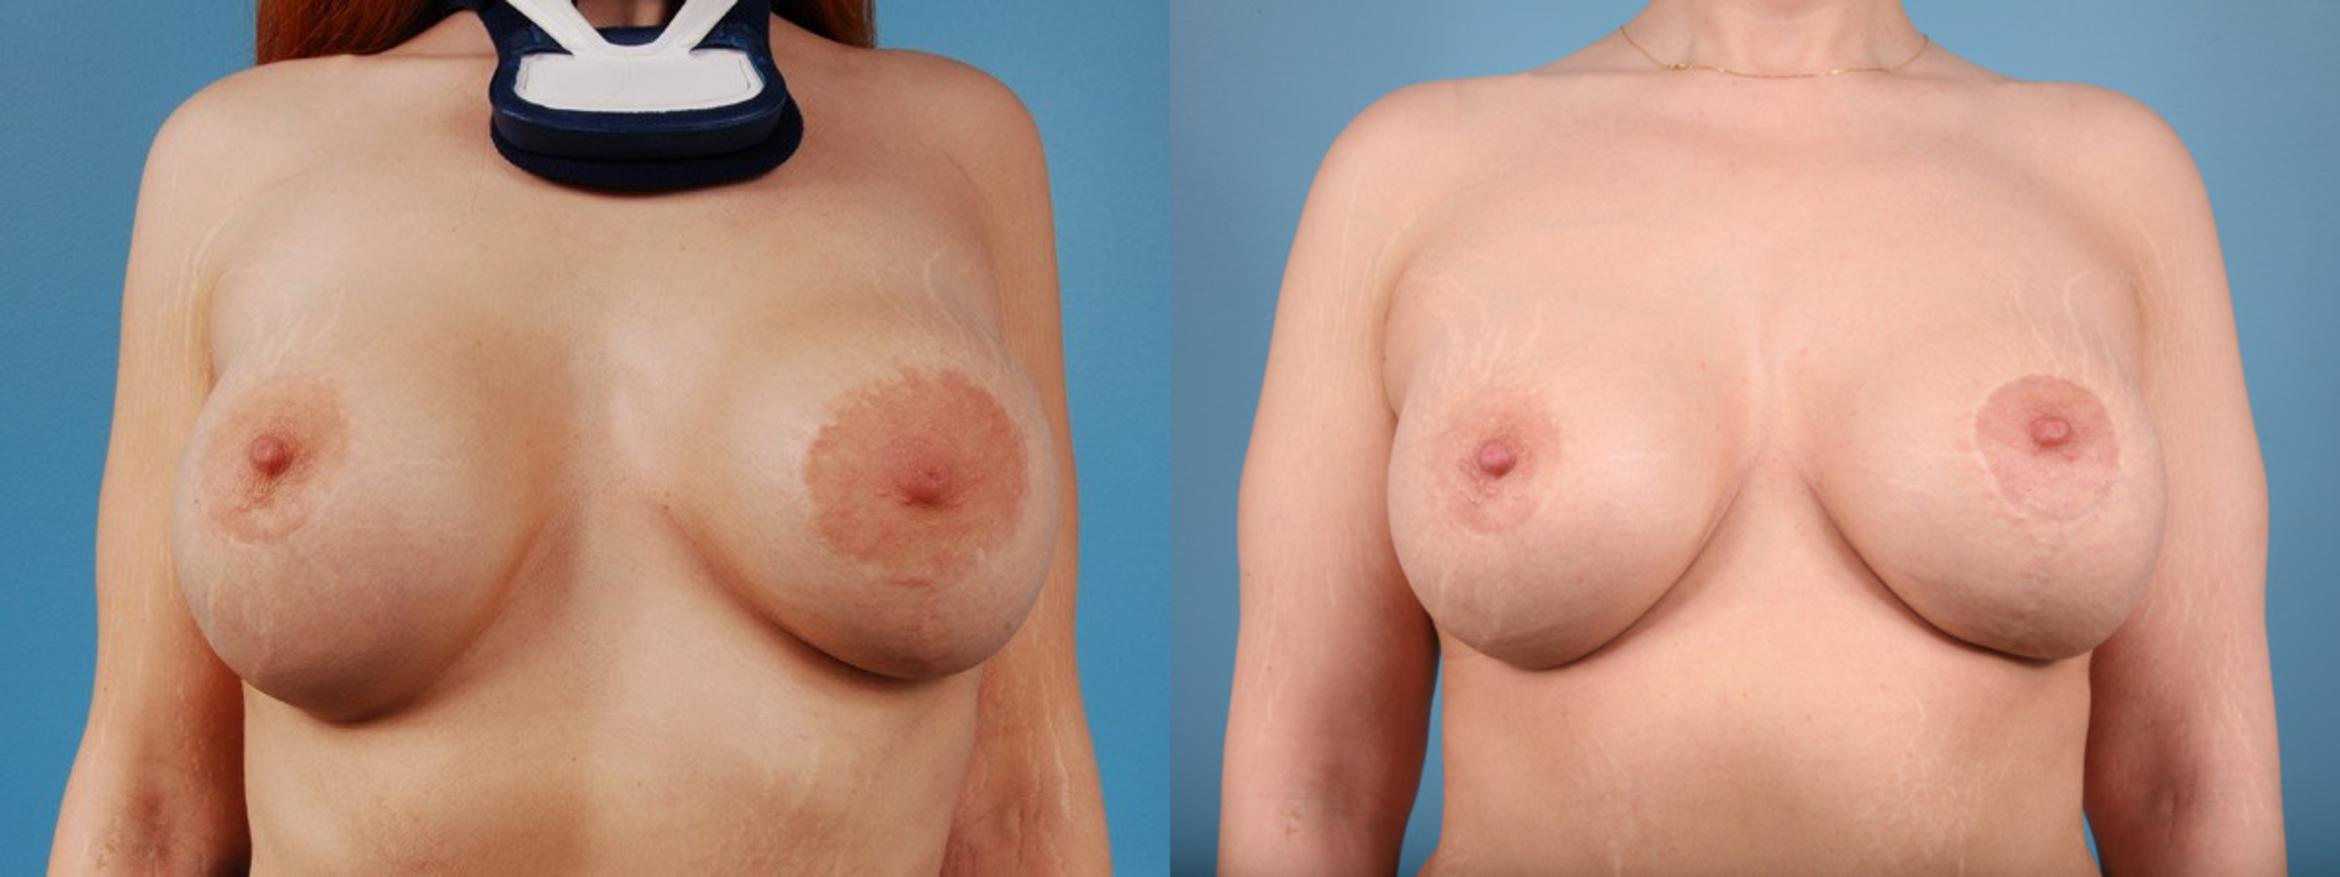 Breast Revision Surgery Case 2 Before & After View #1 | Chicago, IL | TLKM Plastic Surgery